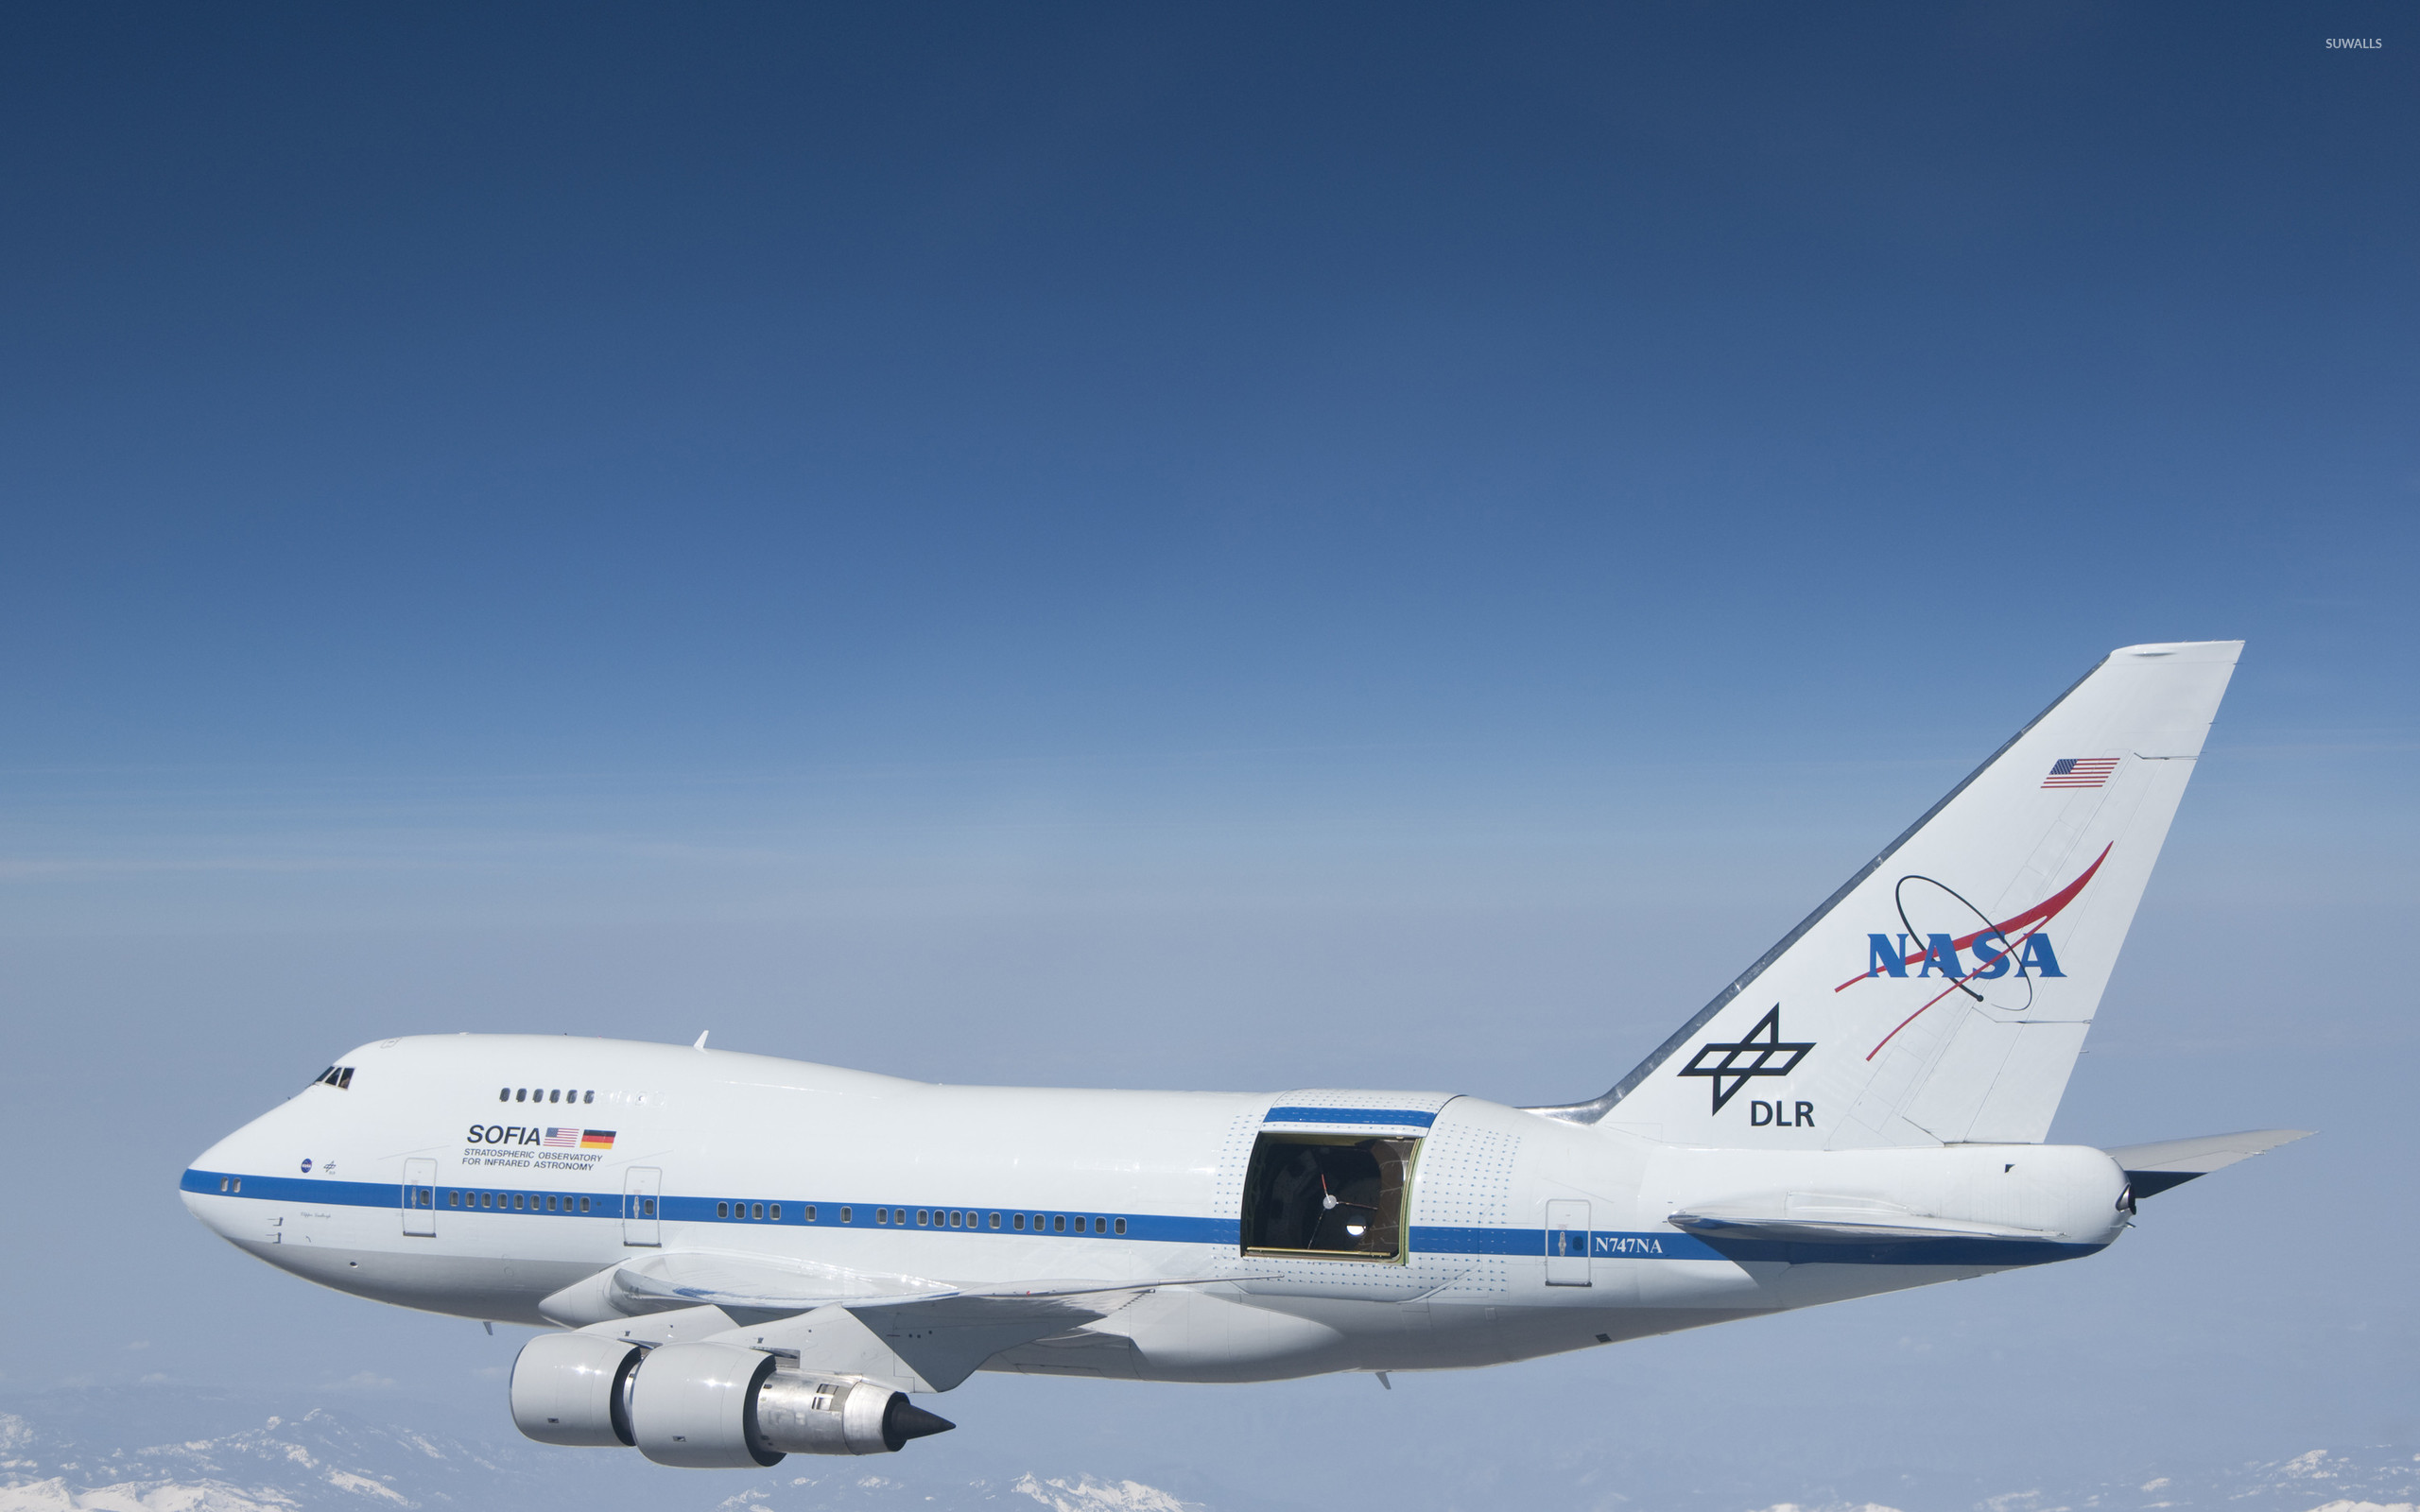 2560x1600 Nasa Boeing 747 in-flight wallpaper